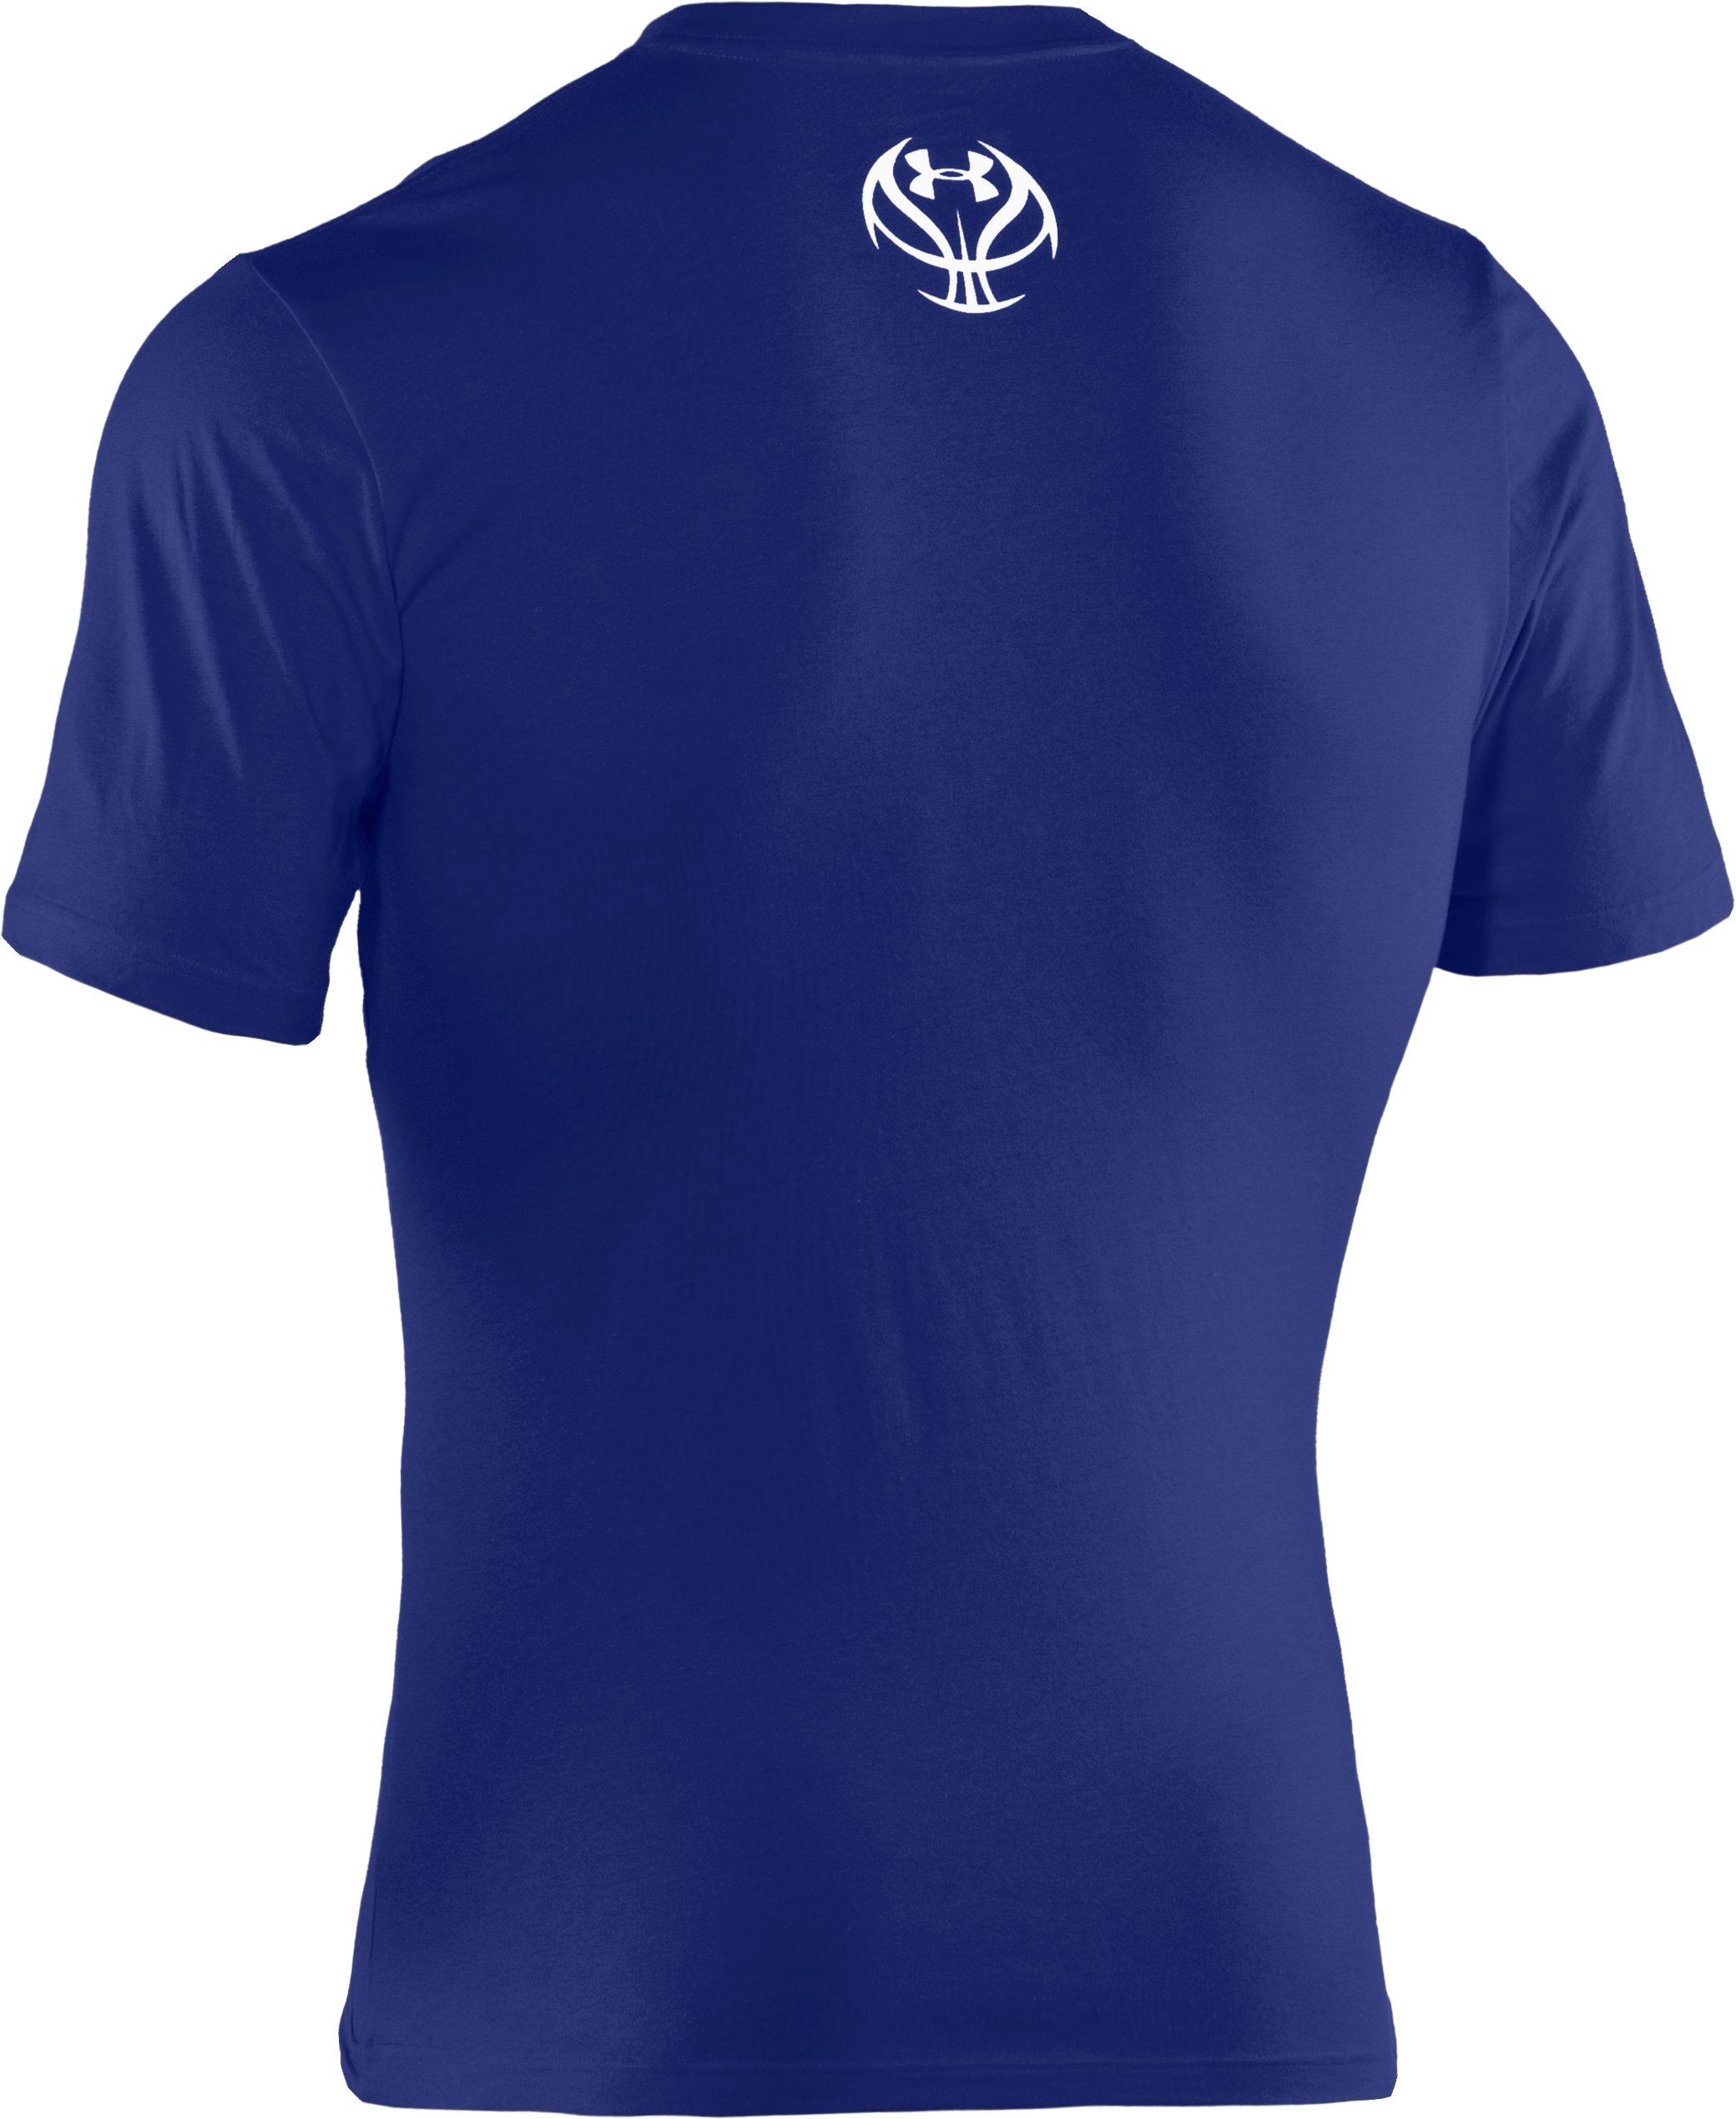 Men's UA Basketball Pregame Graphic T-Shirt, Royal